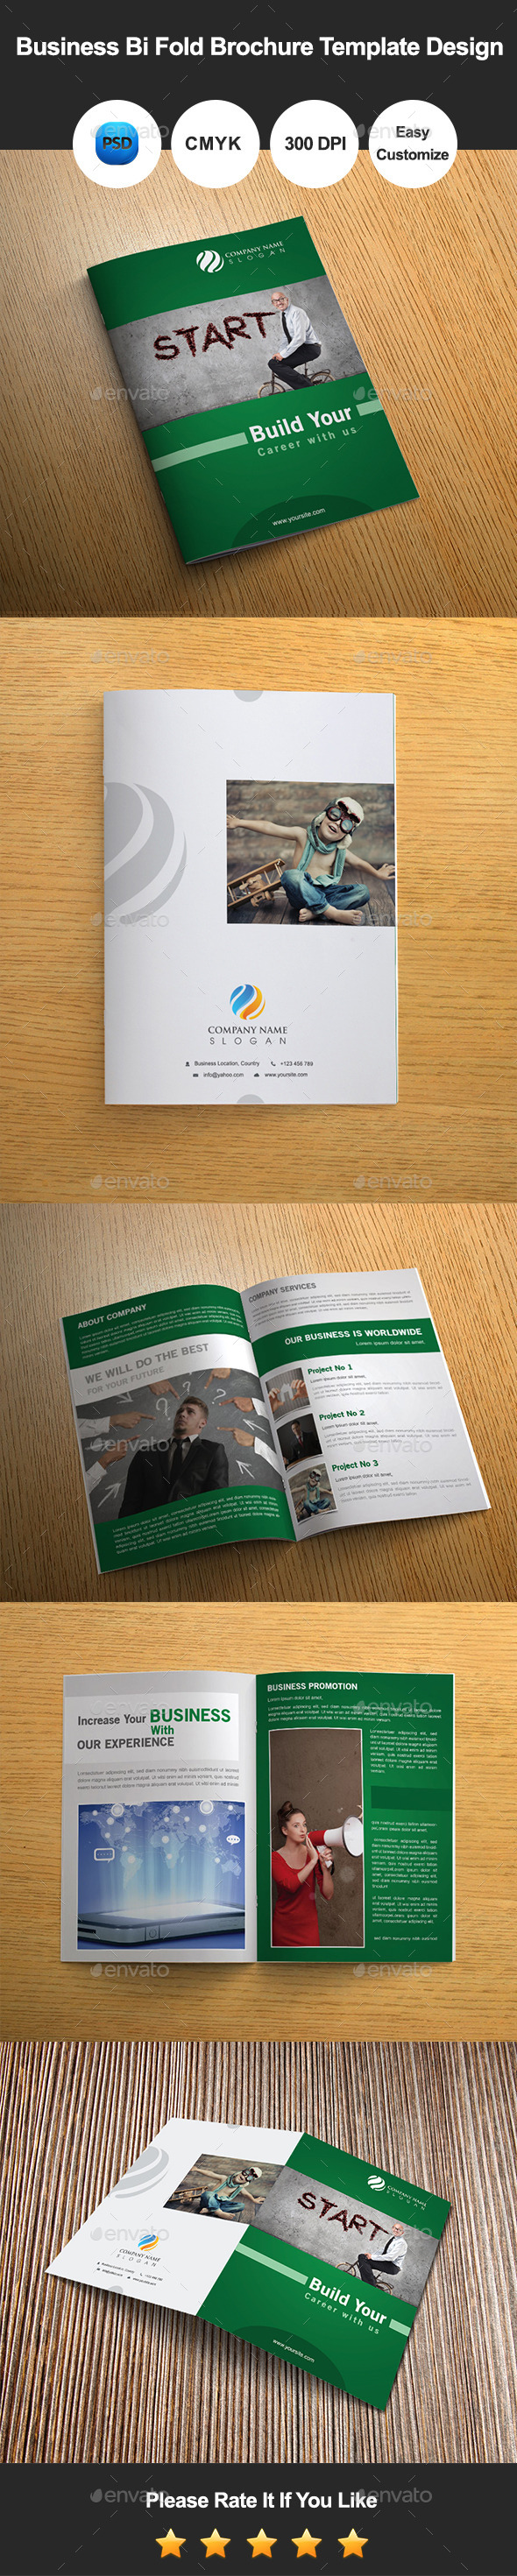 GraphicRiver 6 Pages Business Bi Fold Brochure Template Design 10391285